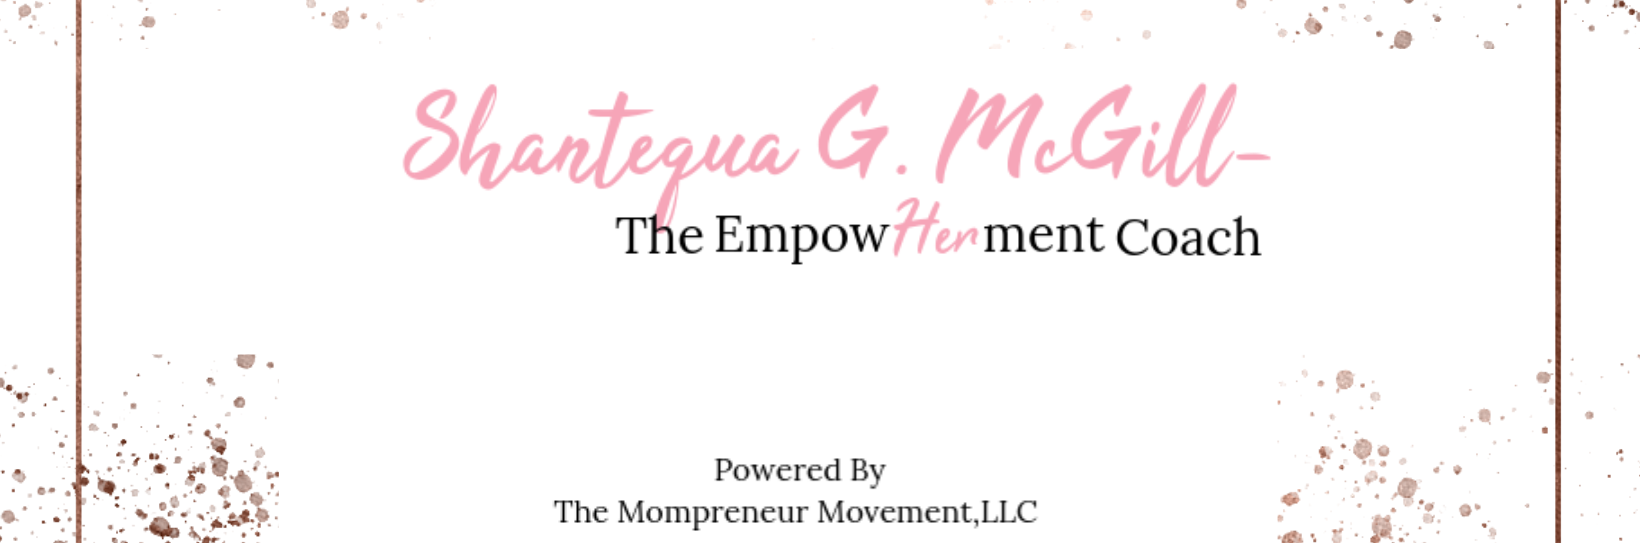 The EmpowHerment Network